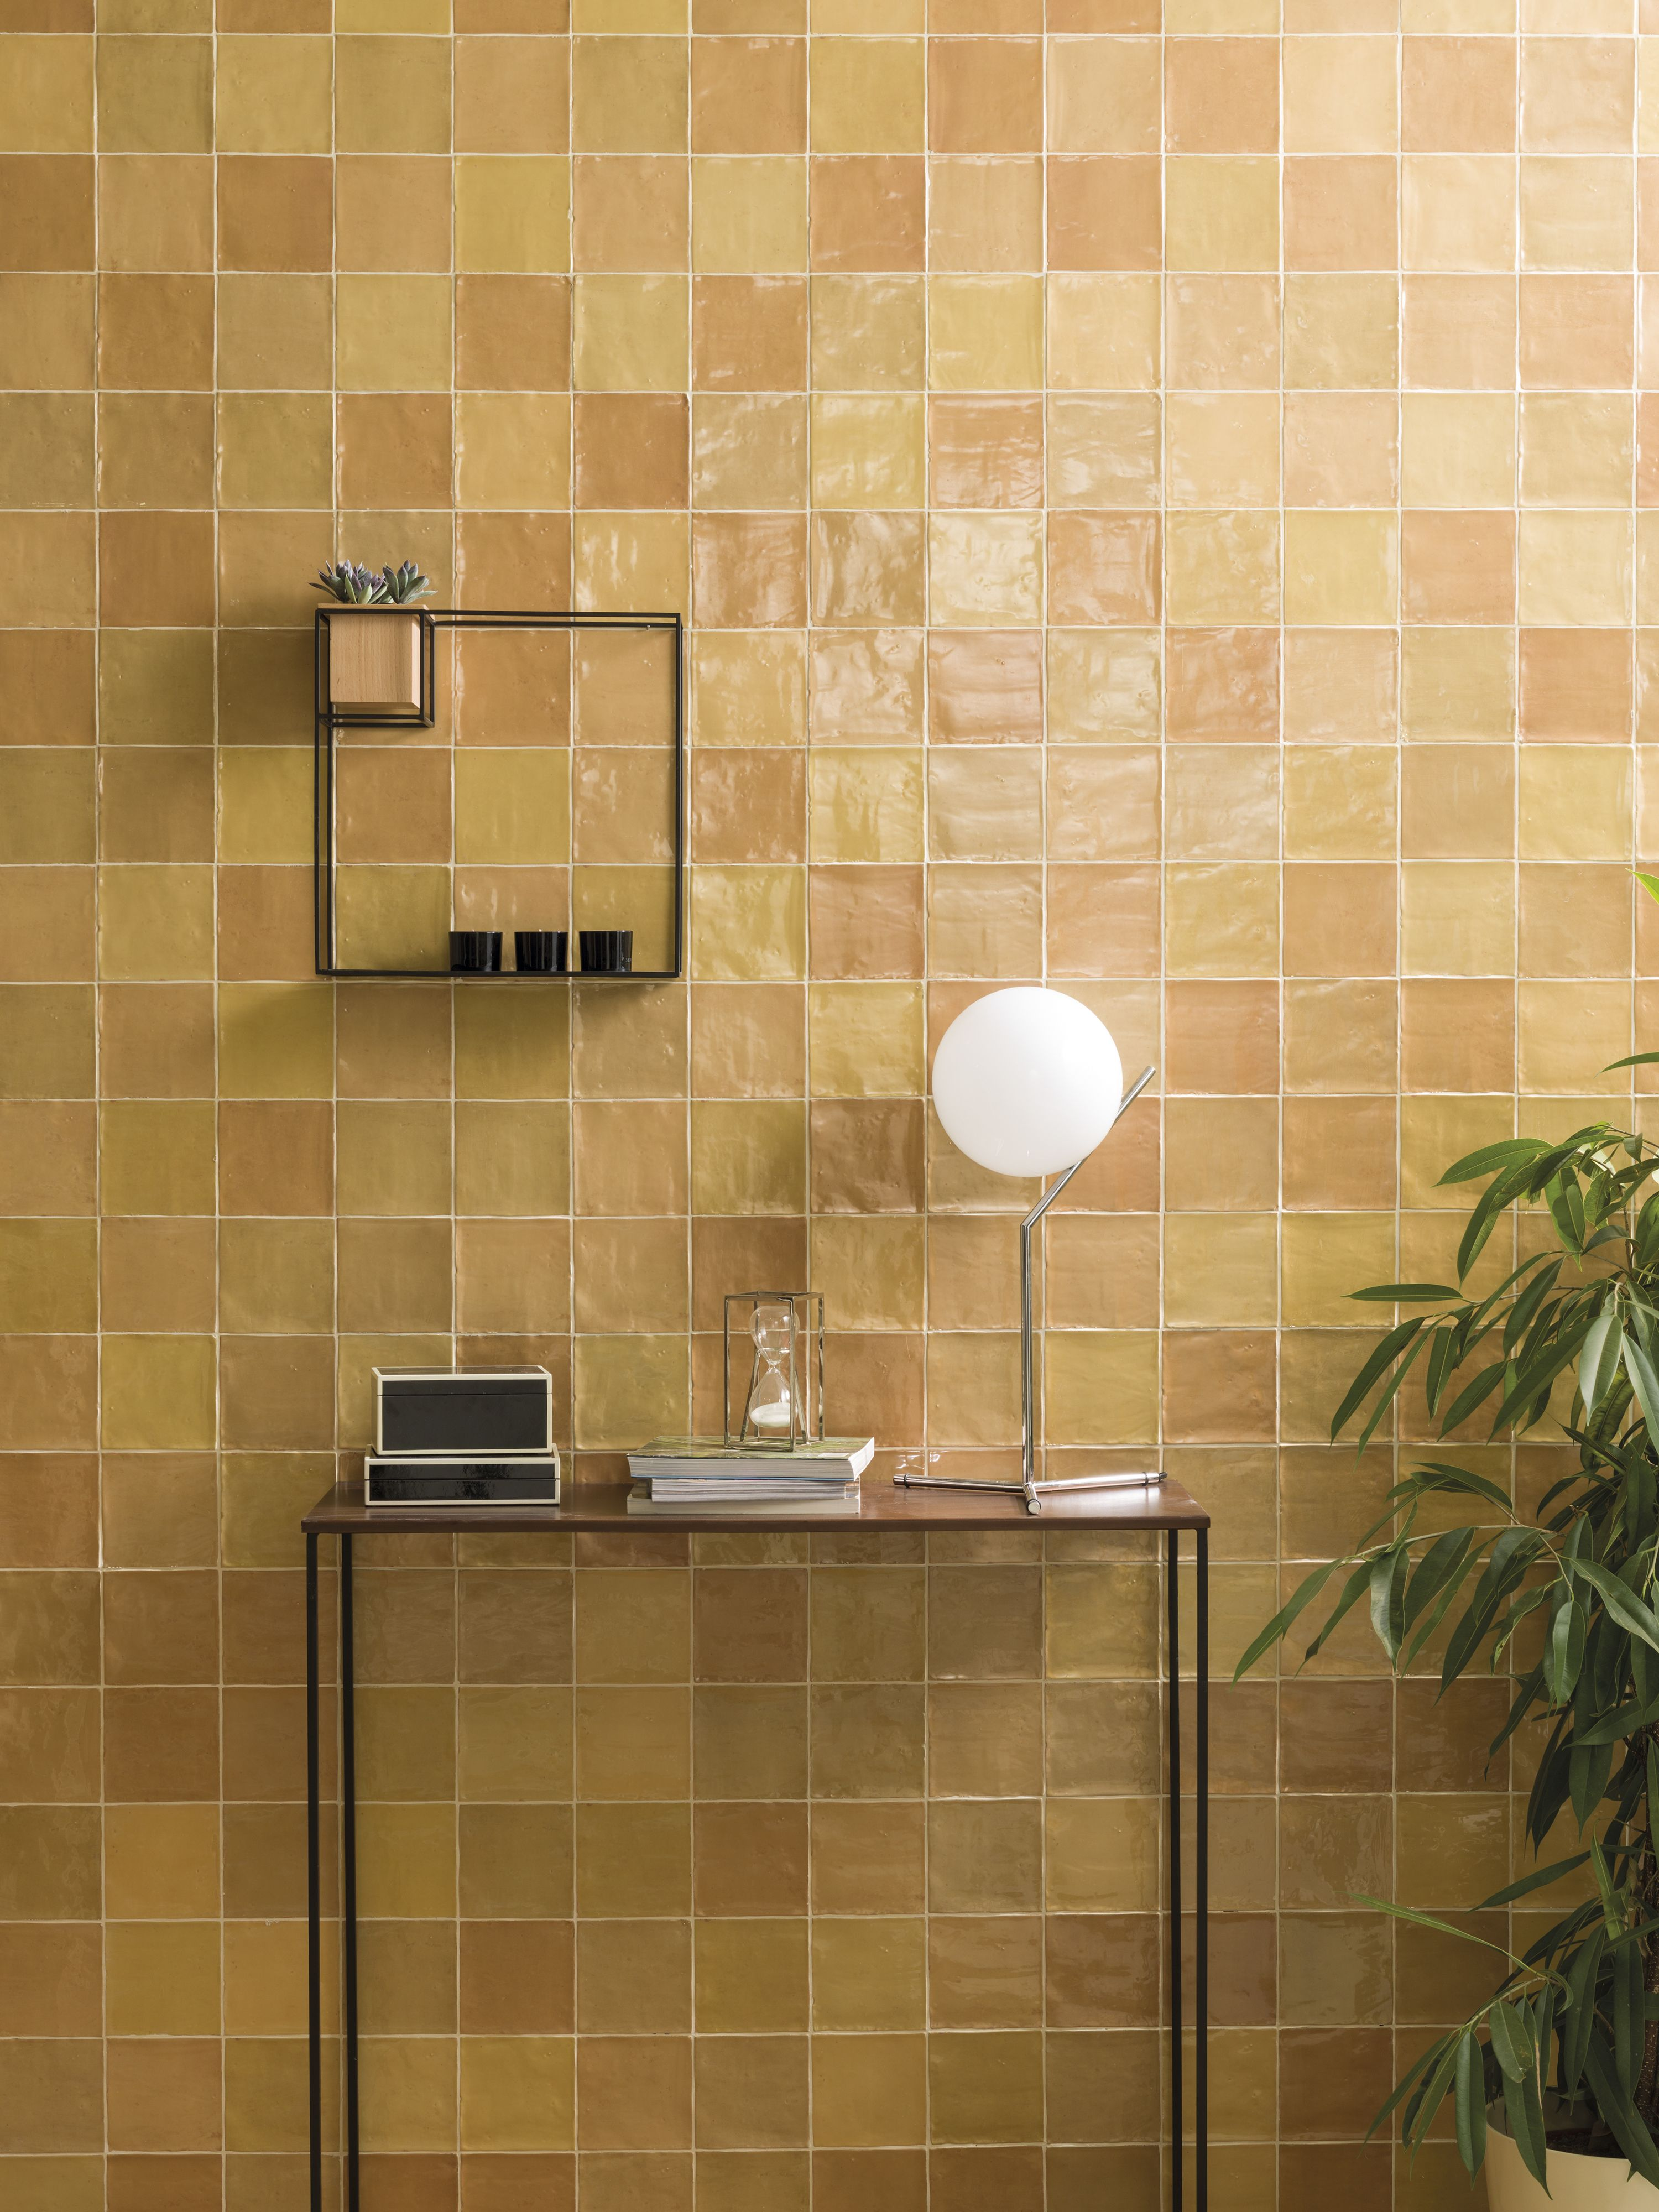 The Morocco Styled Tiles That Every House Needs Porcelanosa Trendbook Marrakech